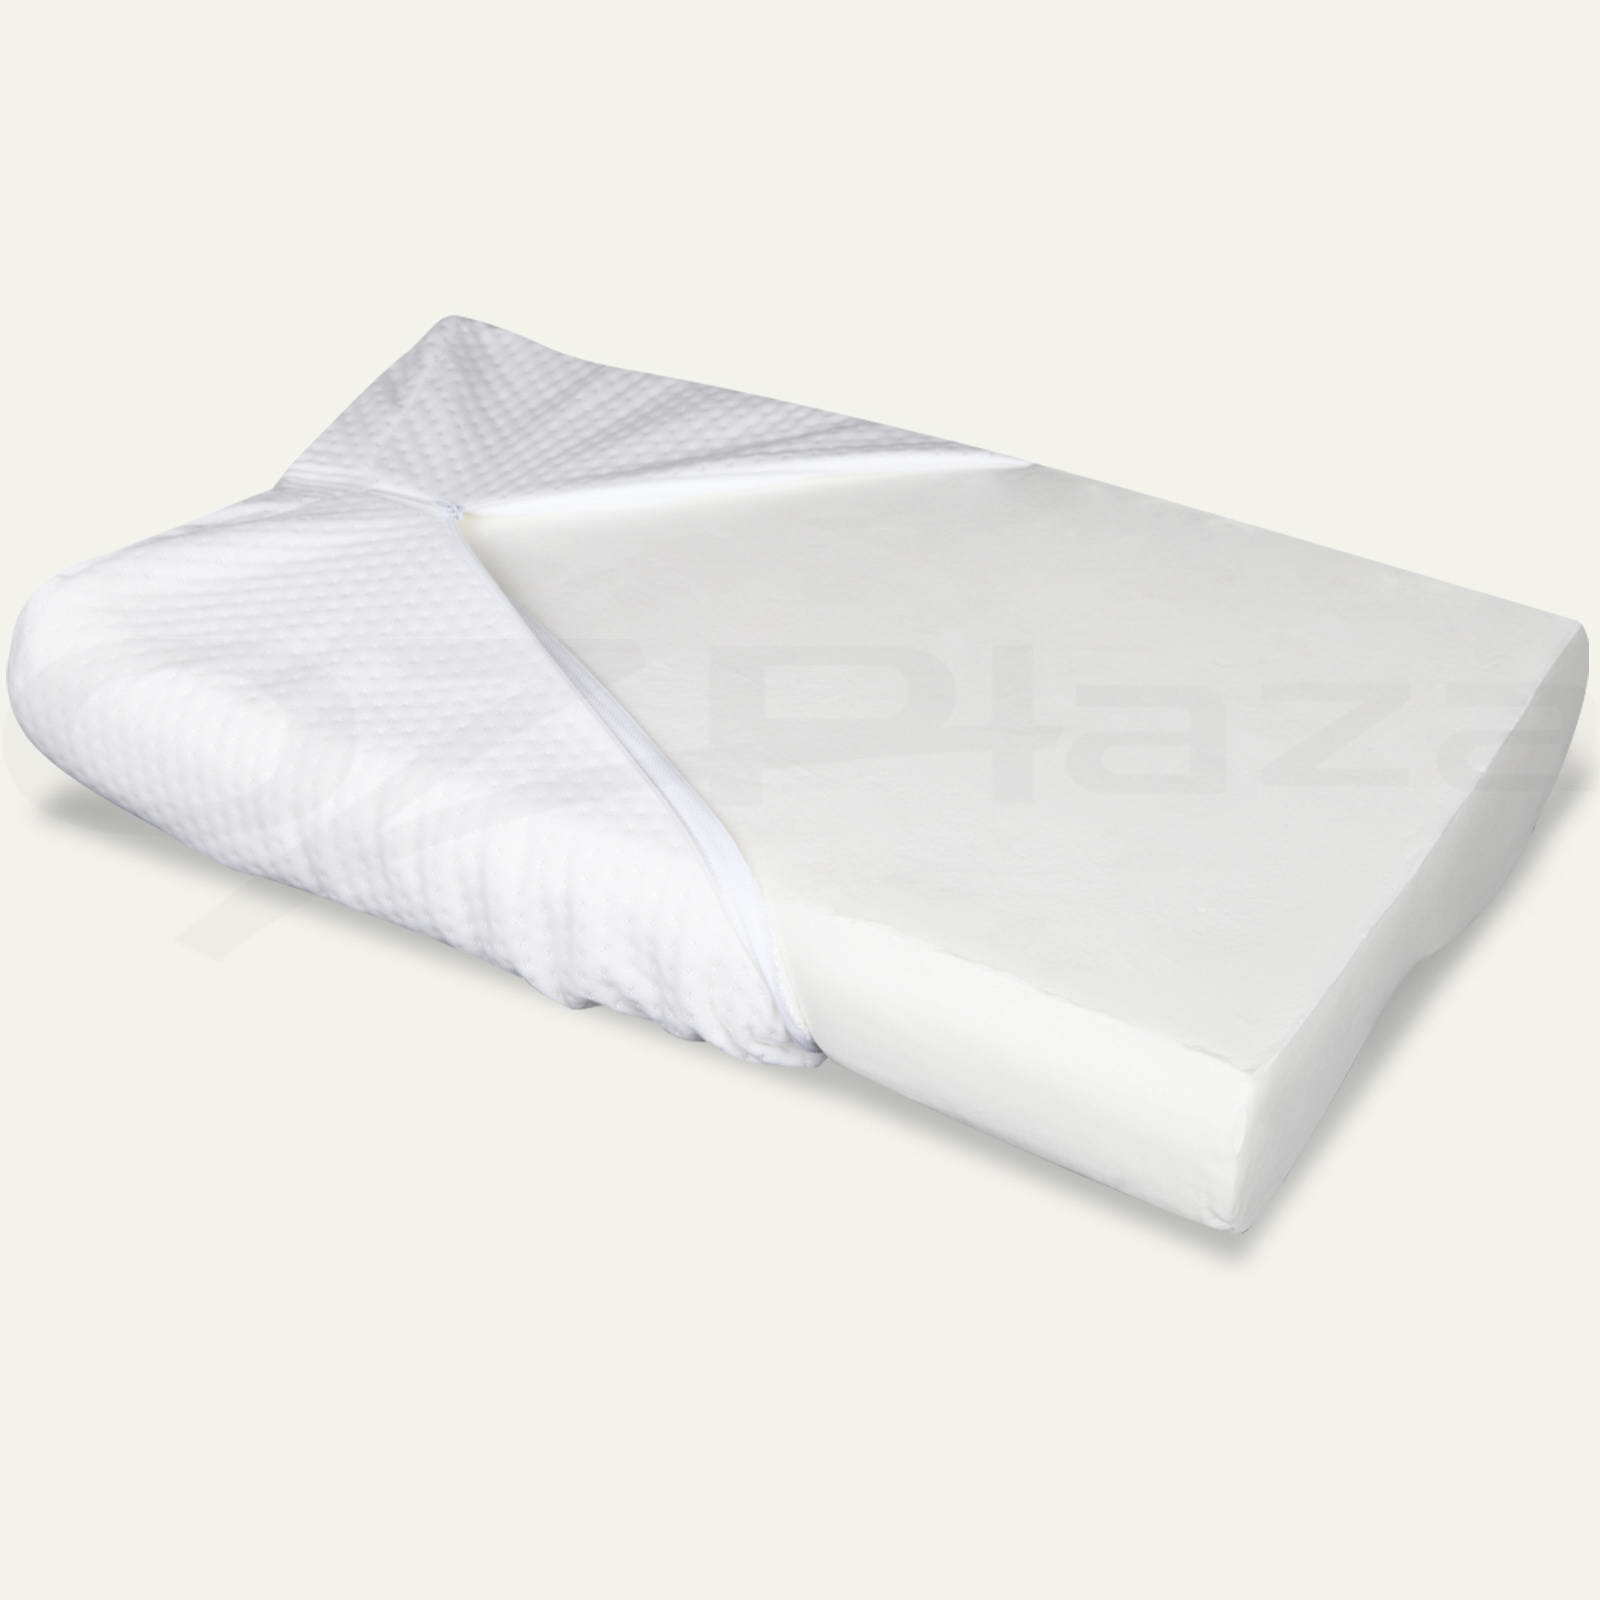 2x Supreme High Density Memory Foam Pillow Contour Cool Gel Home Hotel Top Cover eBay